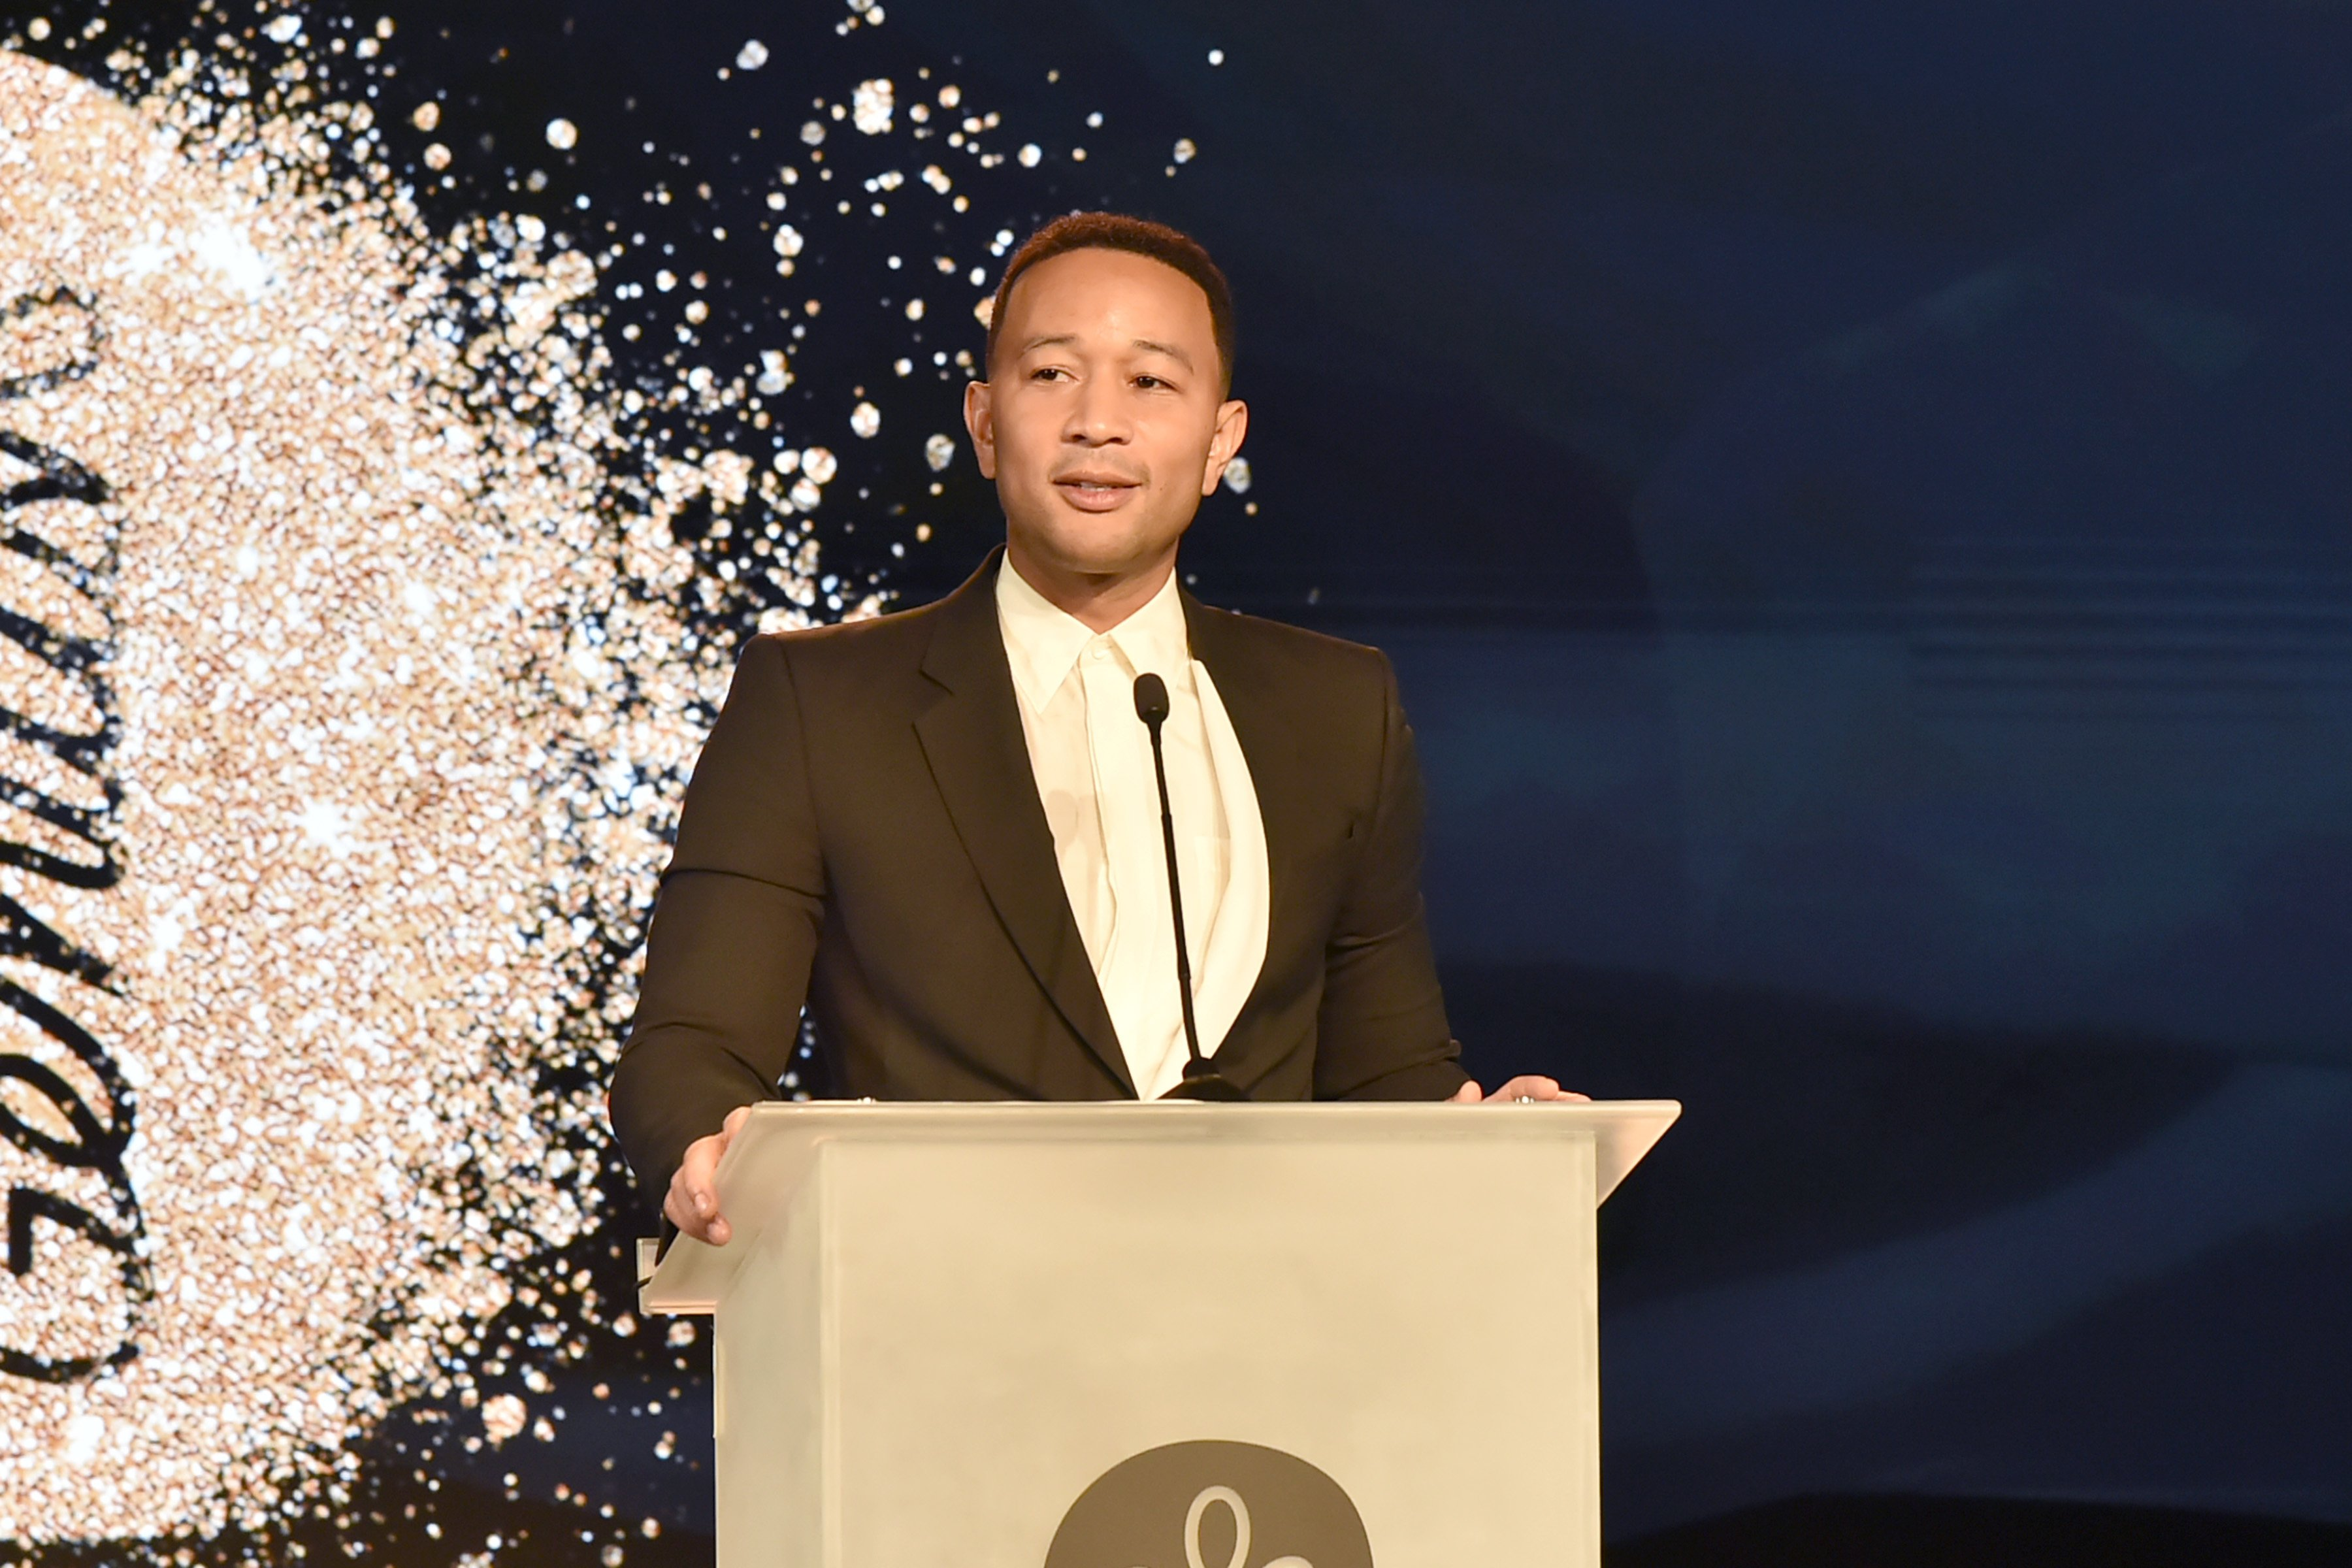 John Legend on November 04, 2019 in Palm Springs, California | Photo: Getty Images